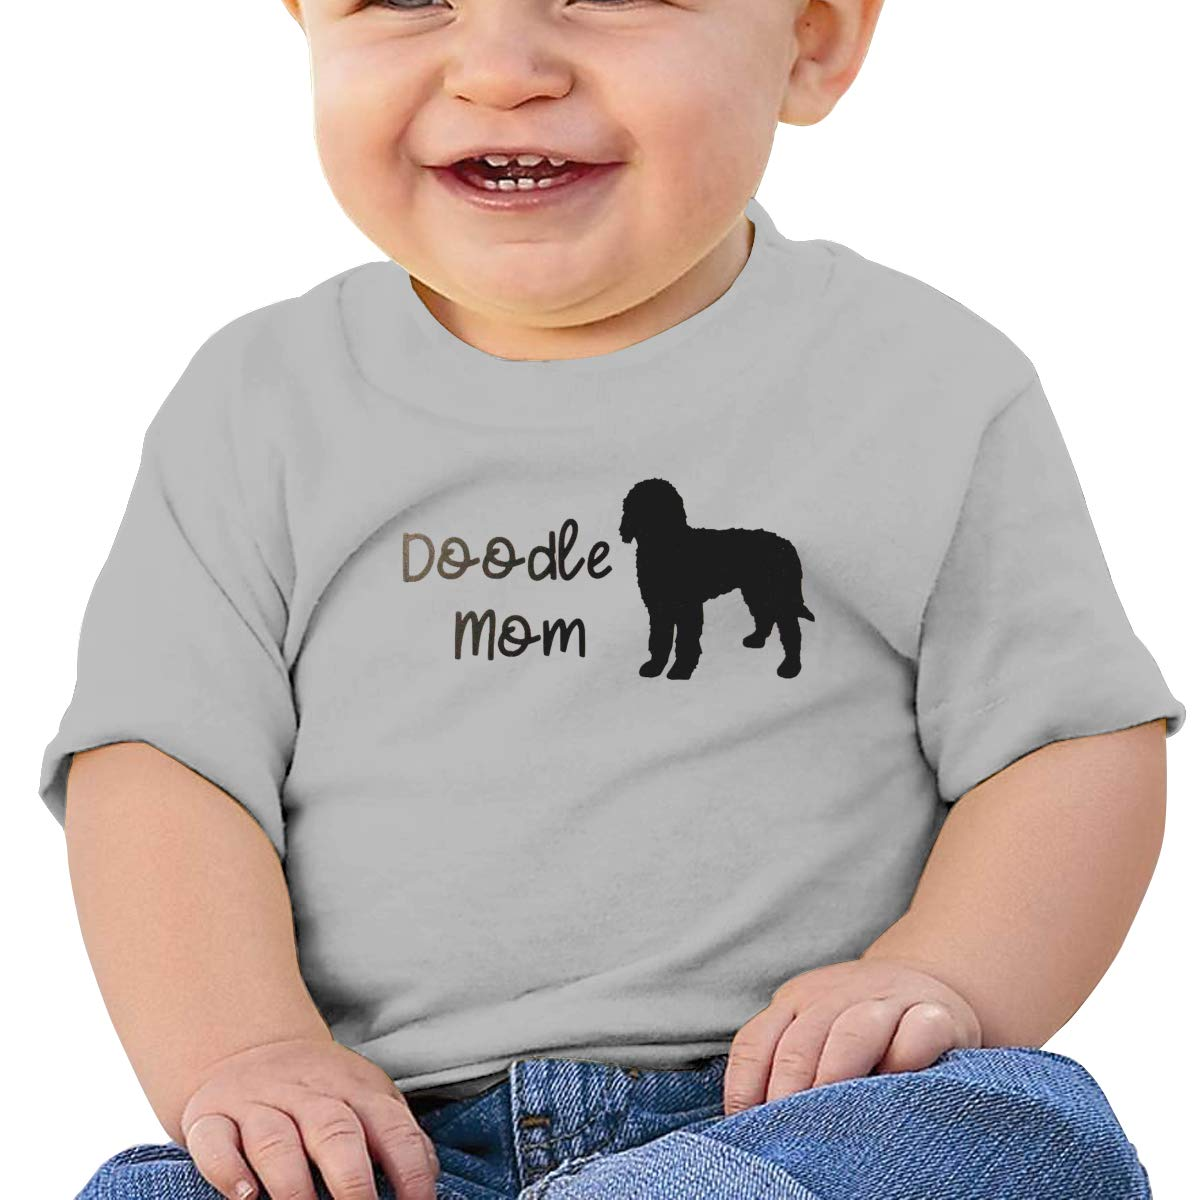 JVNSS Doodle Mom Baby T-Shirt Baby Boy Girl Cotton T Shirts Soft Graphic Tees for 6M-2T Baby